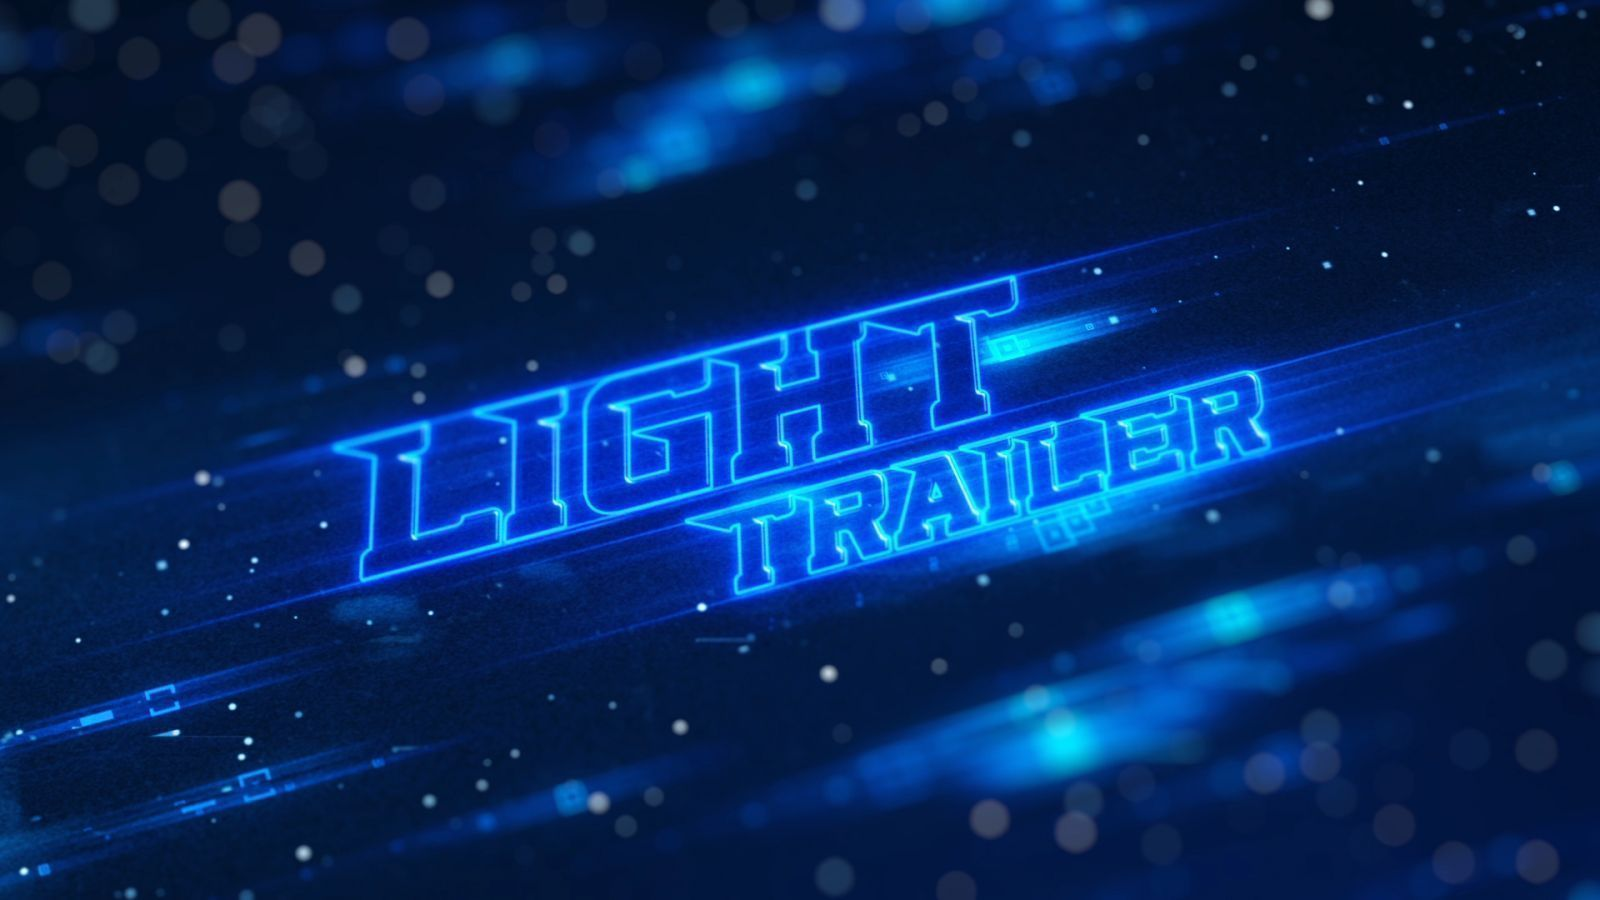 Light Trailer